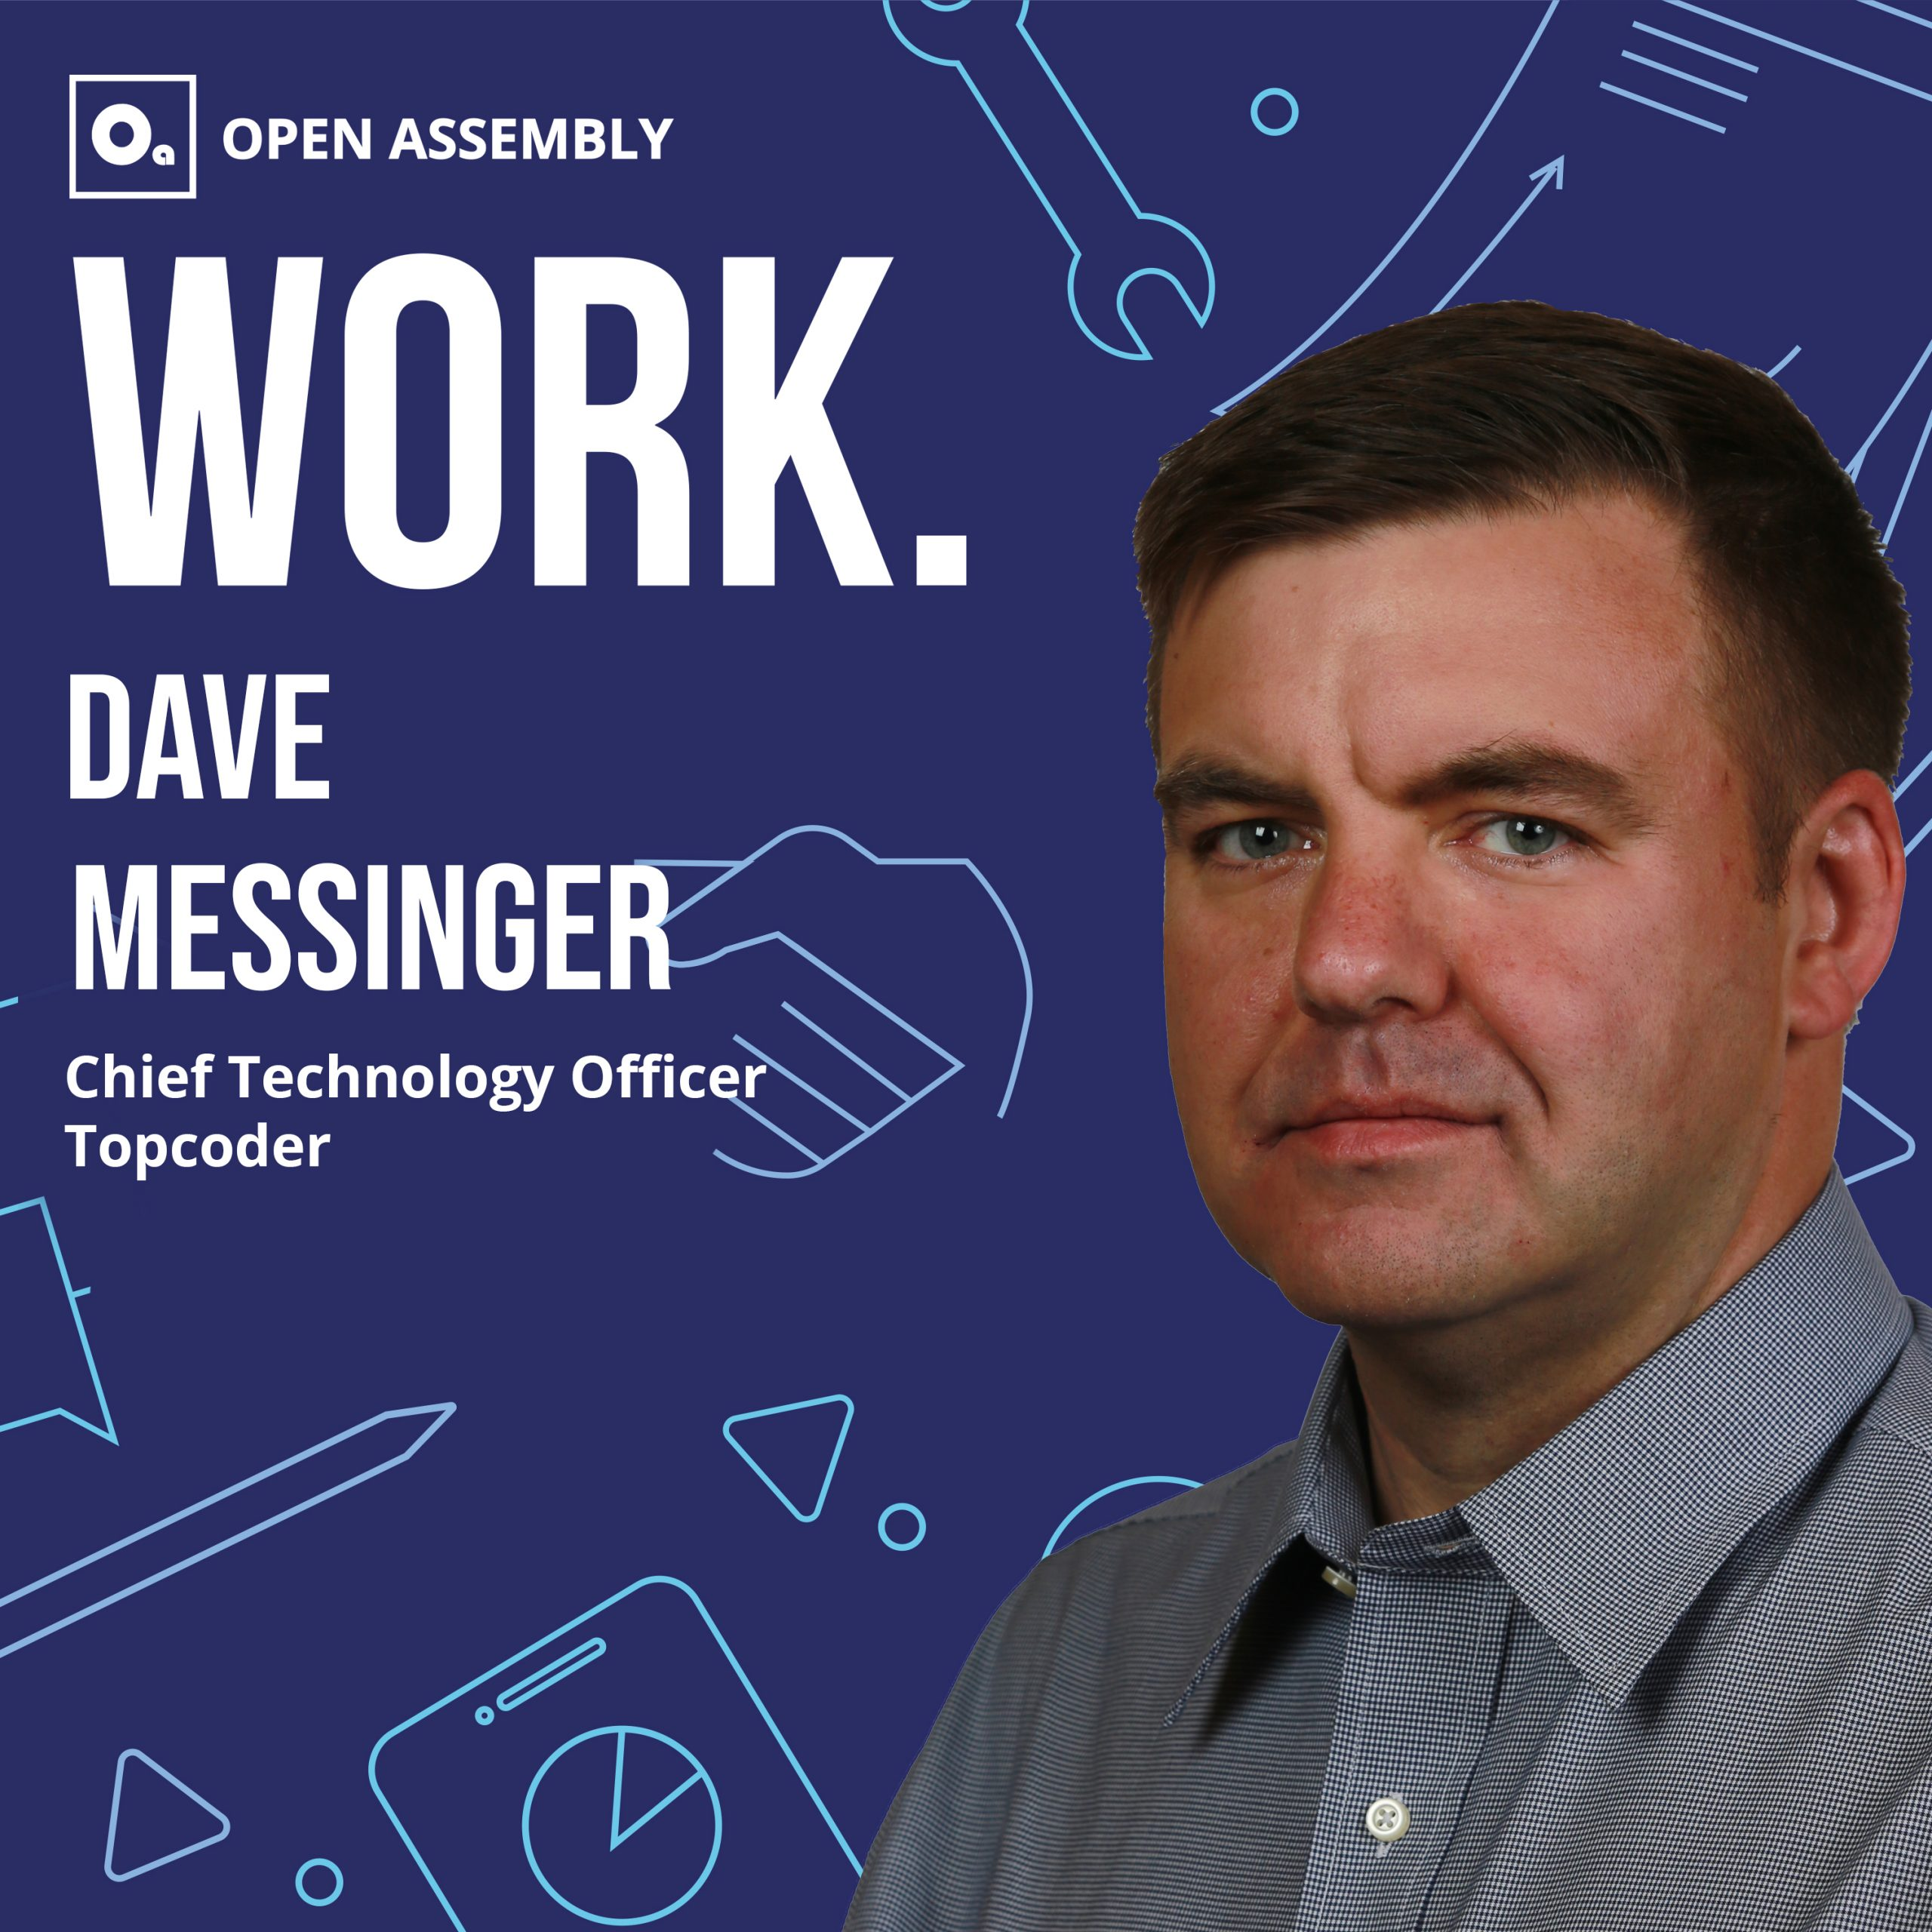 Dave Messinger Topcoder